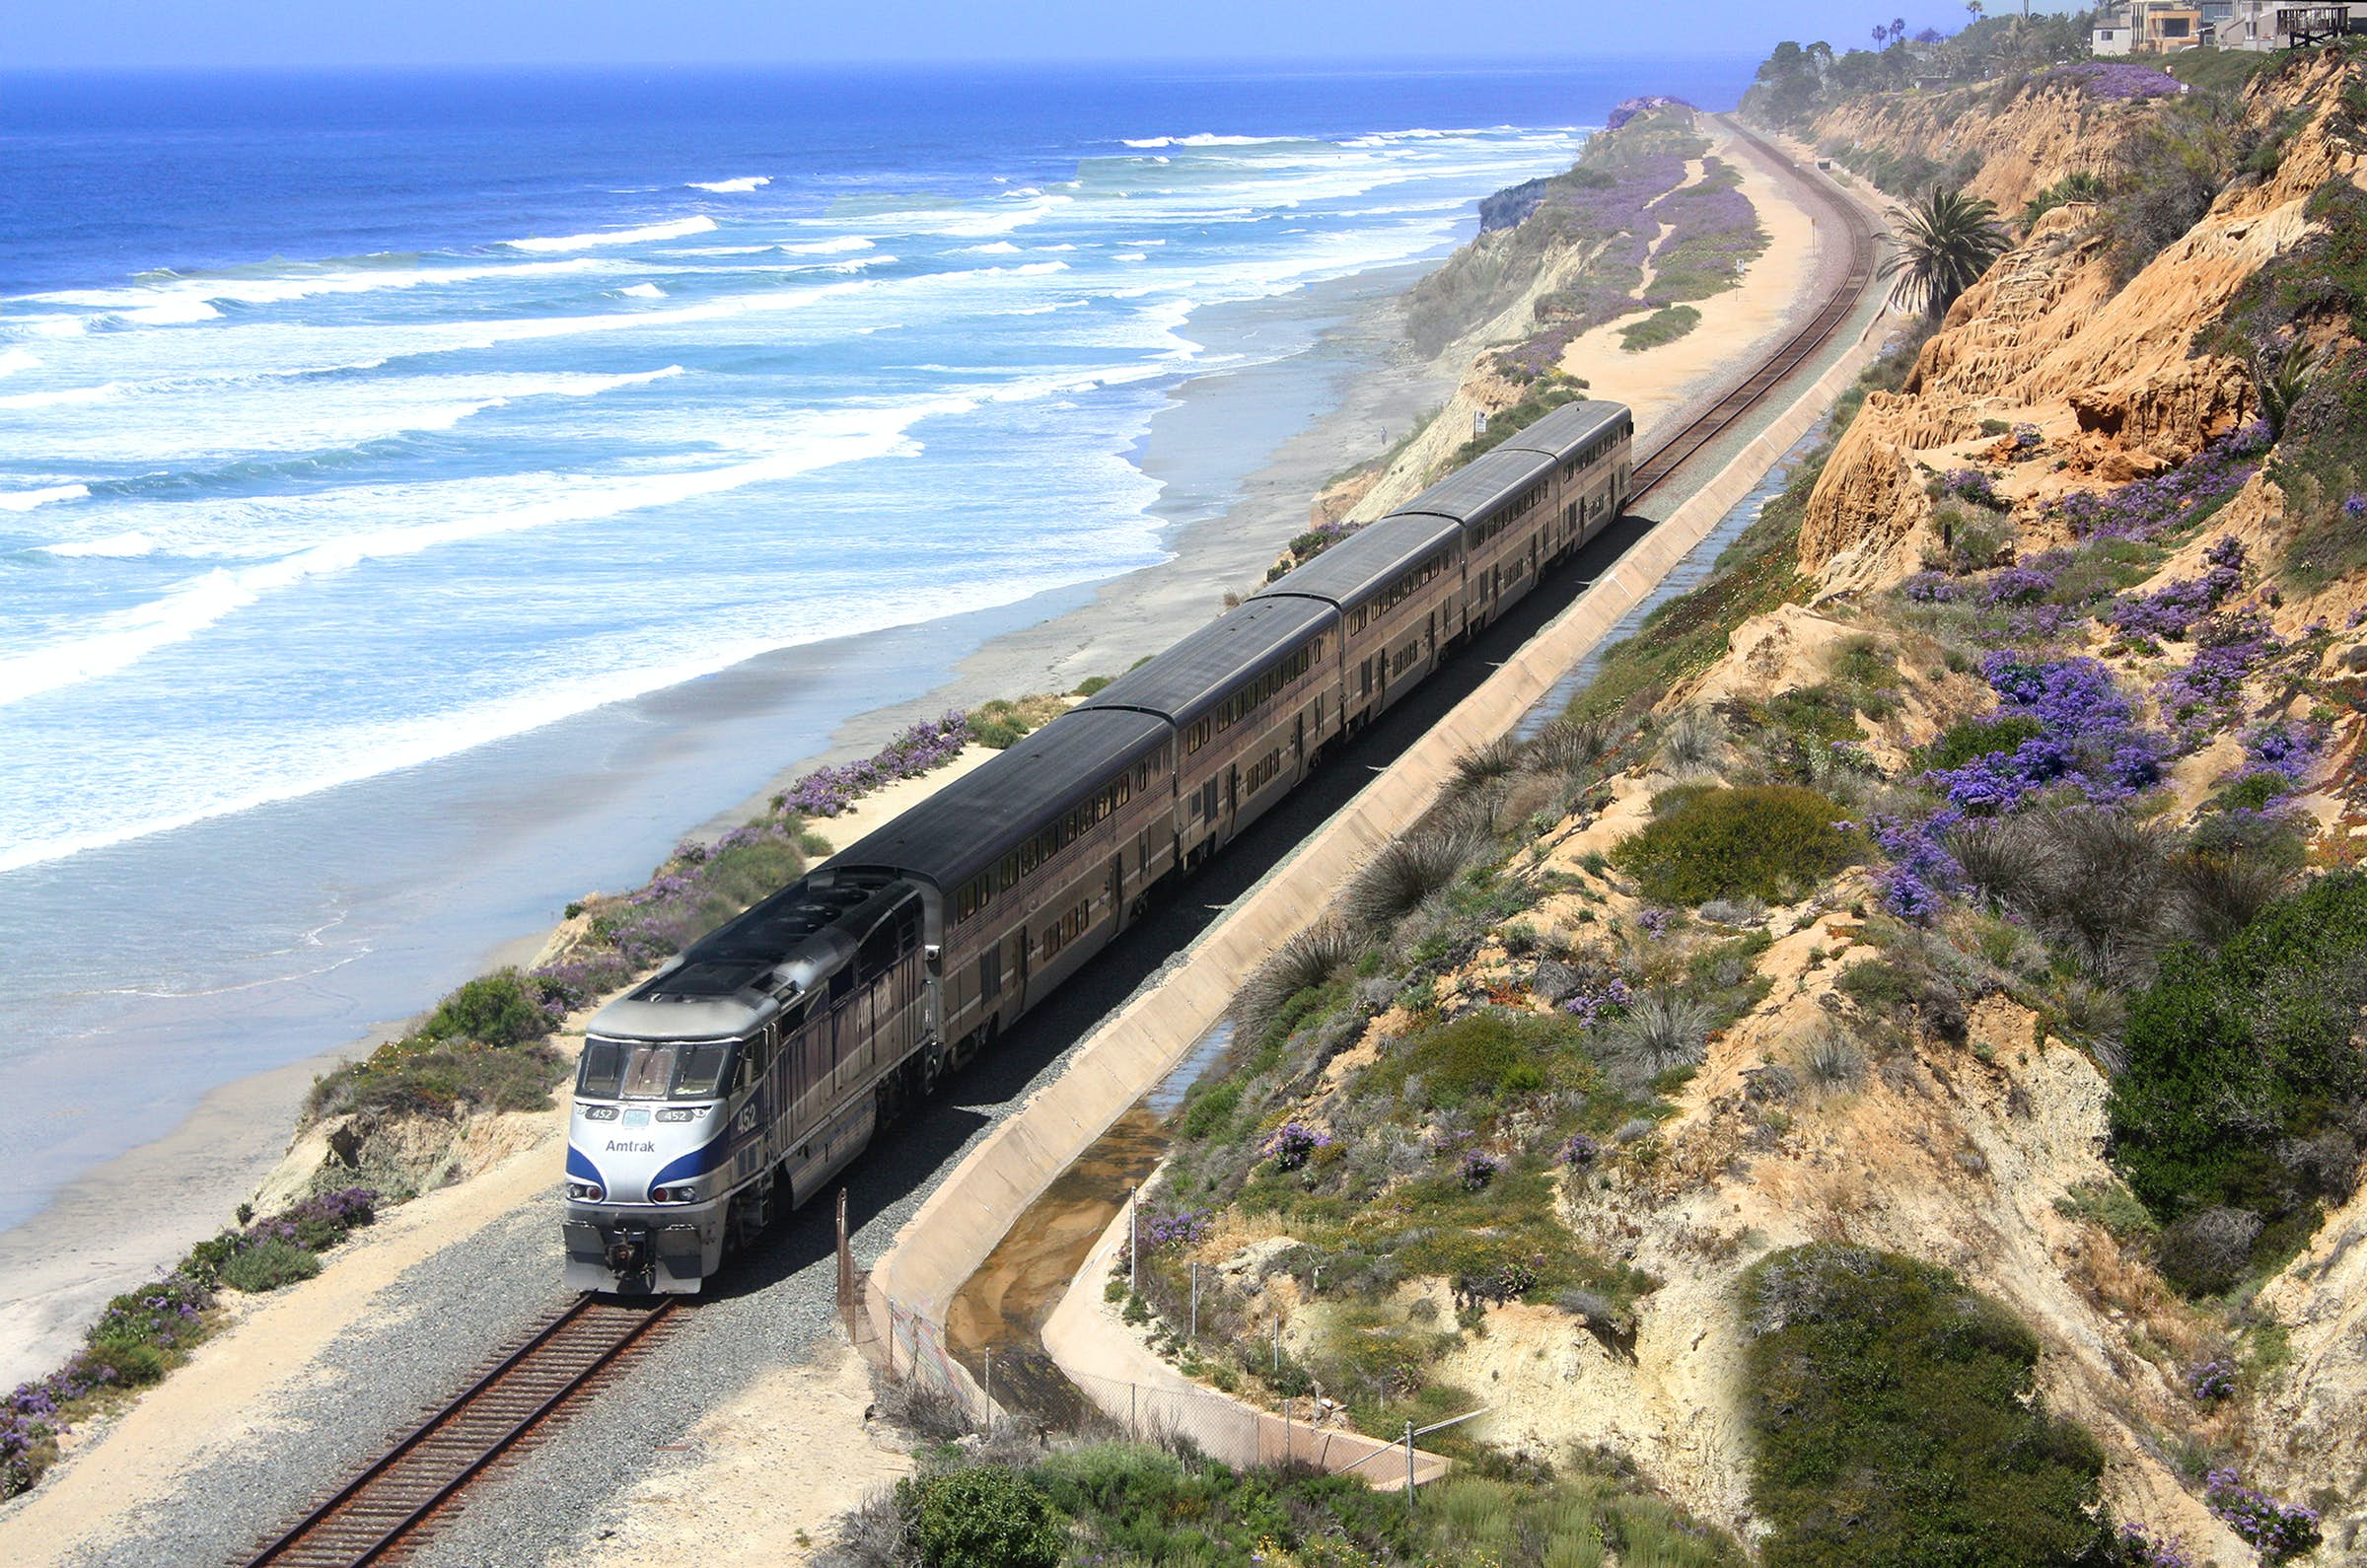 11 Amtrak Routes With The Most Breathtaking Views Lonely Planet